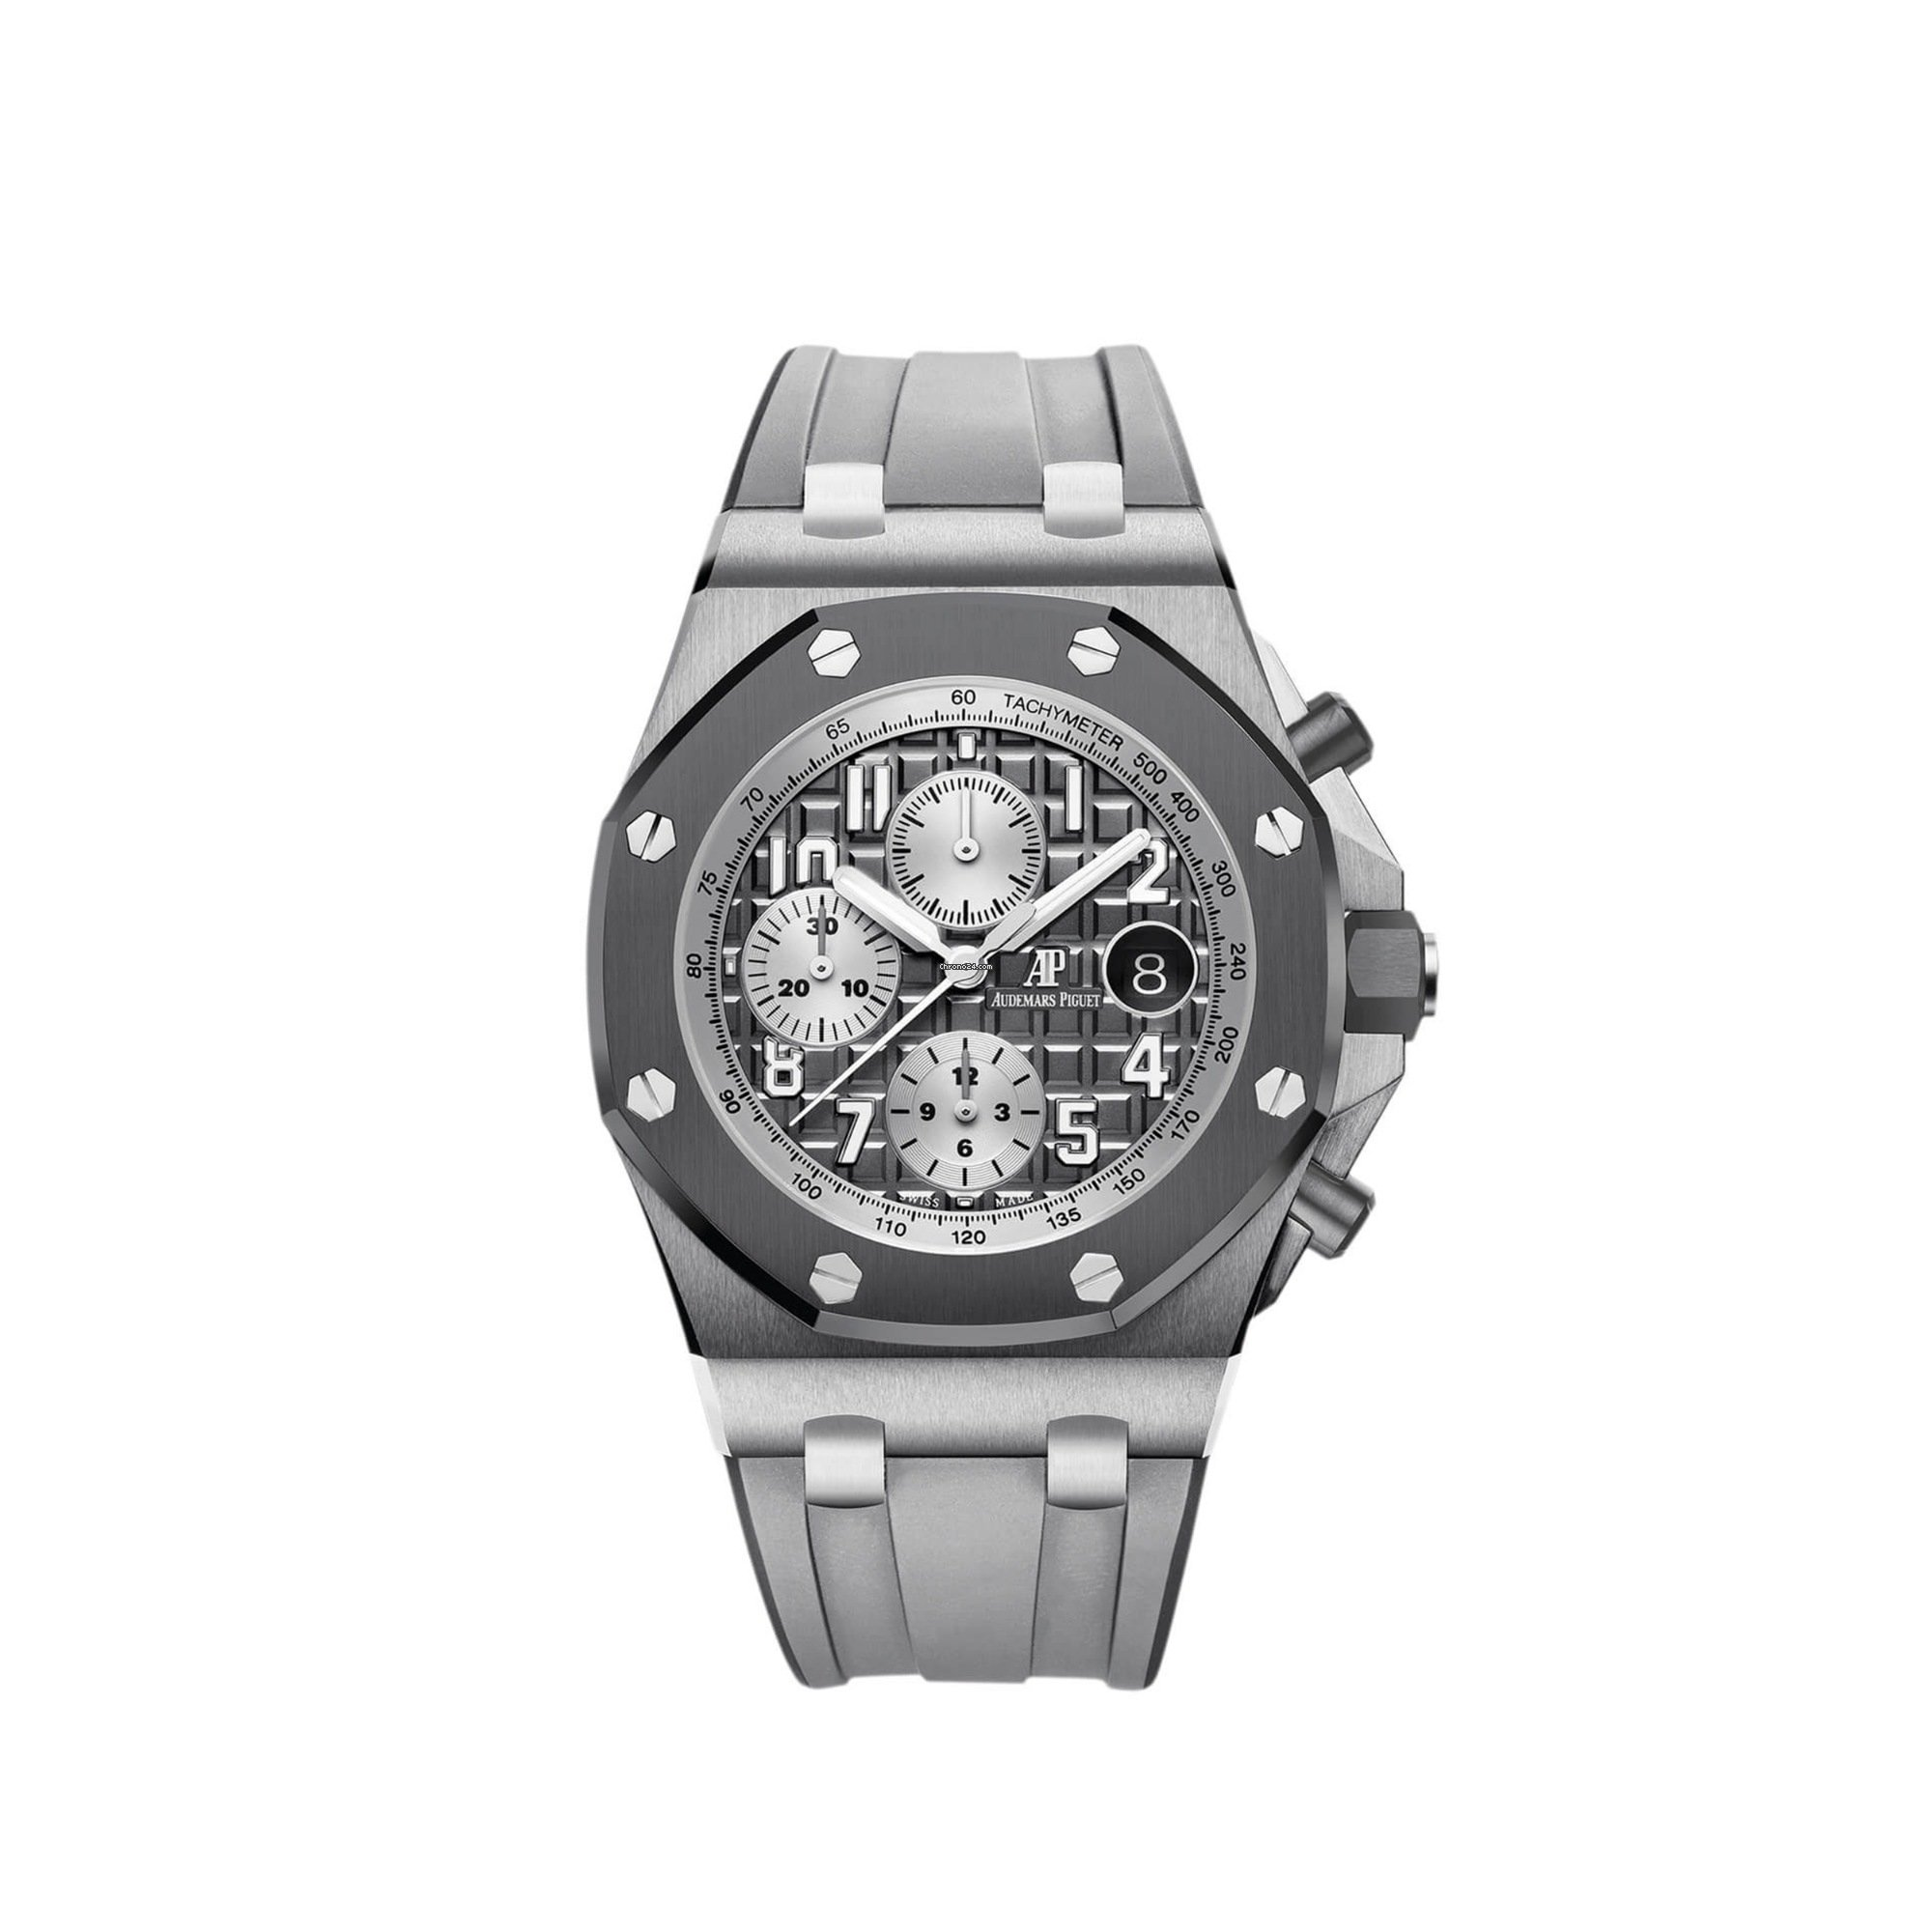 c4465dfe9e3 Audemars Piguet Royal Oak Offshore Ghost Titanium Ceramic... for $28,299  for sale from a Trusted Seller on Chrono24